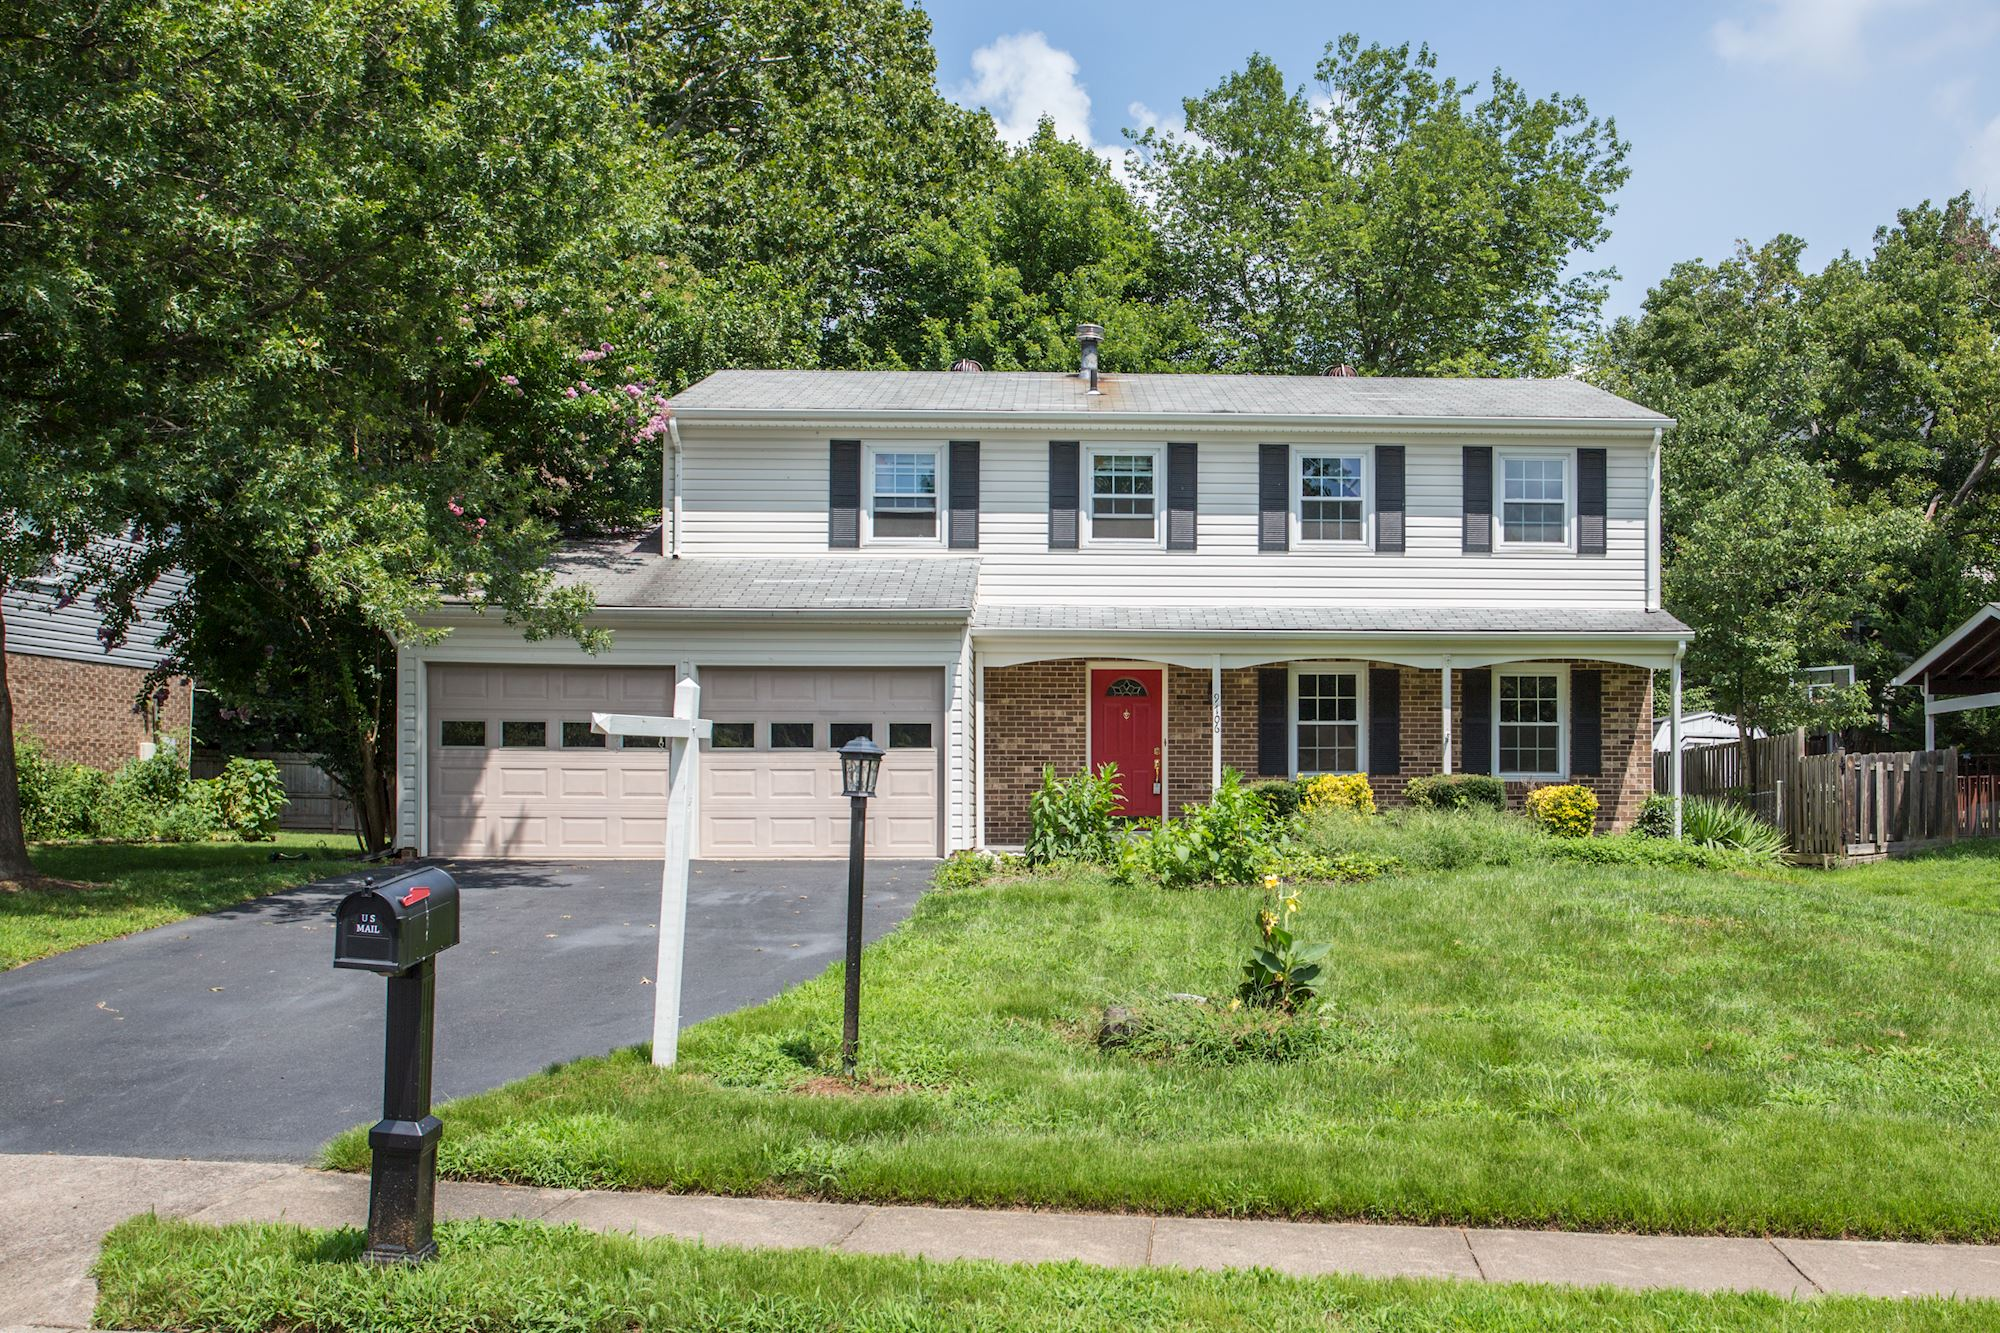 NEW LISTING: Turnkey Colonial With Large Living Spaces in Fairfax, VA